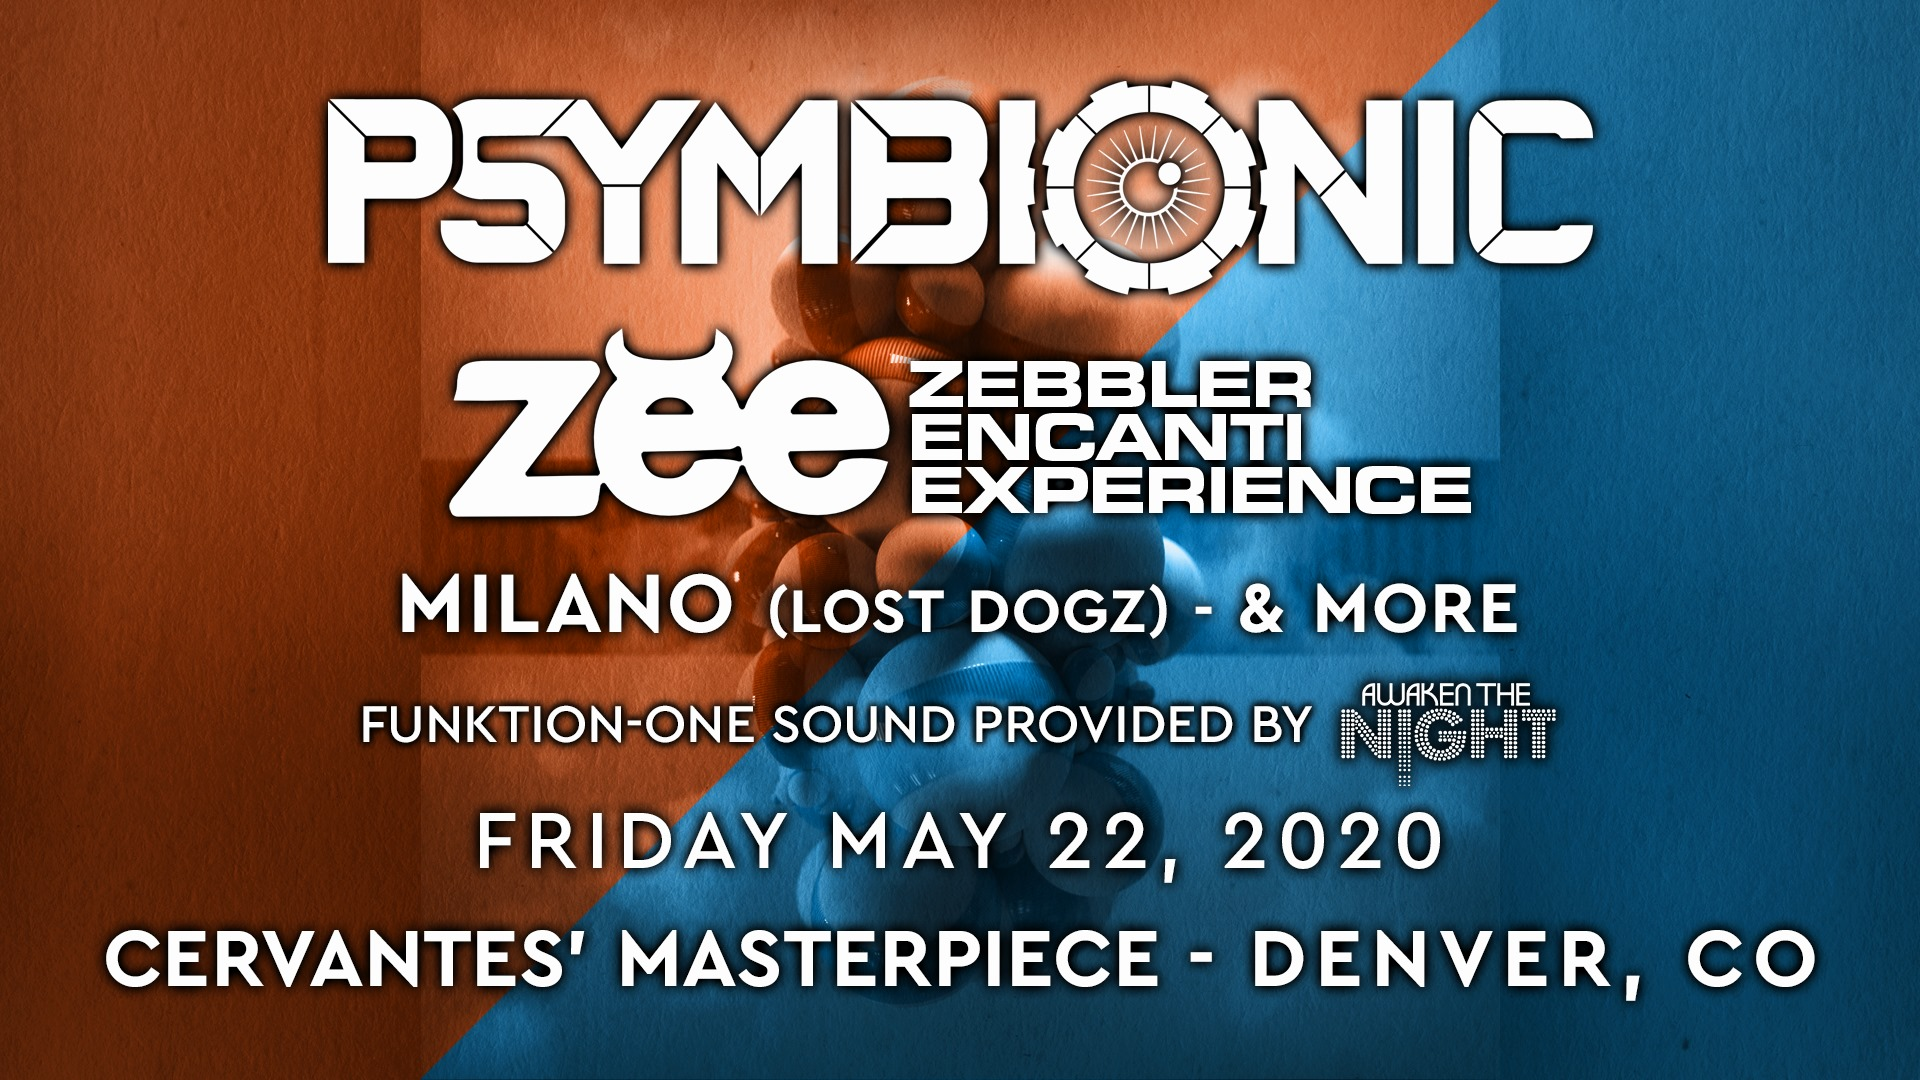 Psymbionic and Zebbler Encanti Experience w/ Milano (Lost Dogz) + More